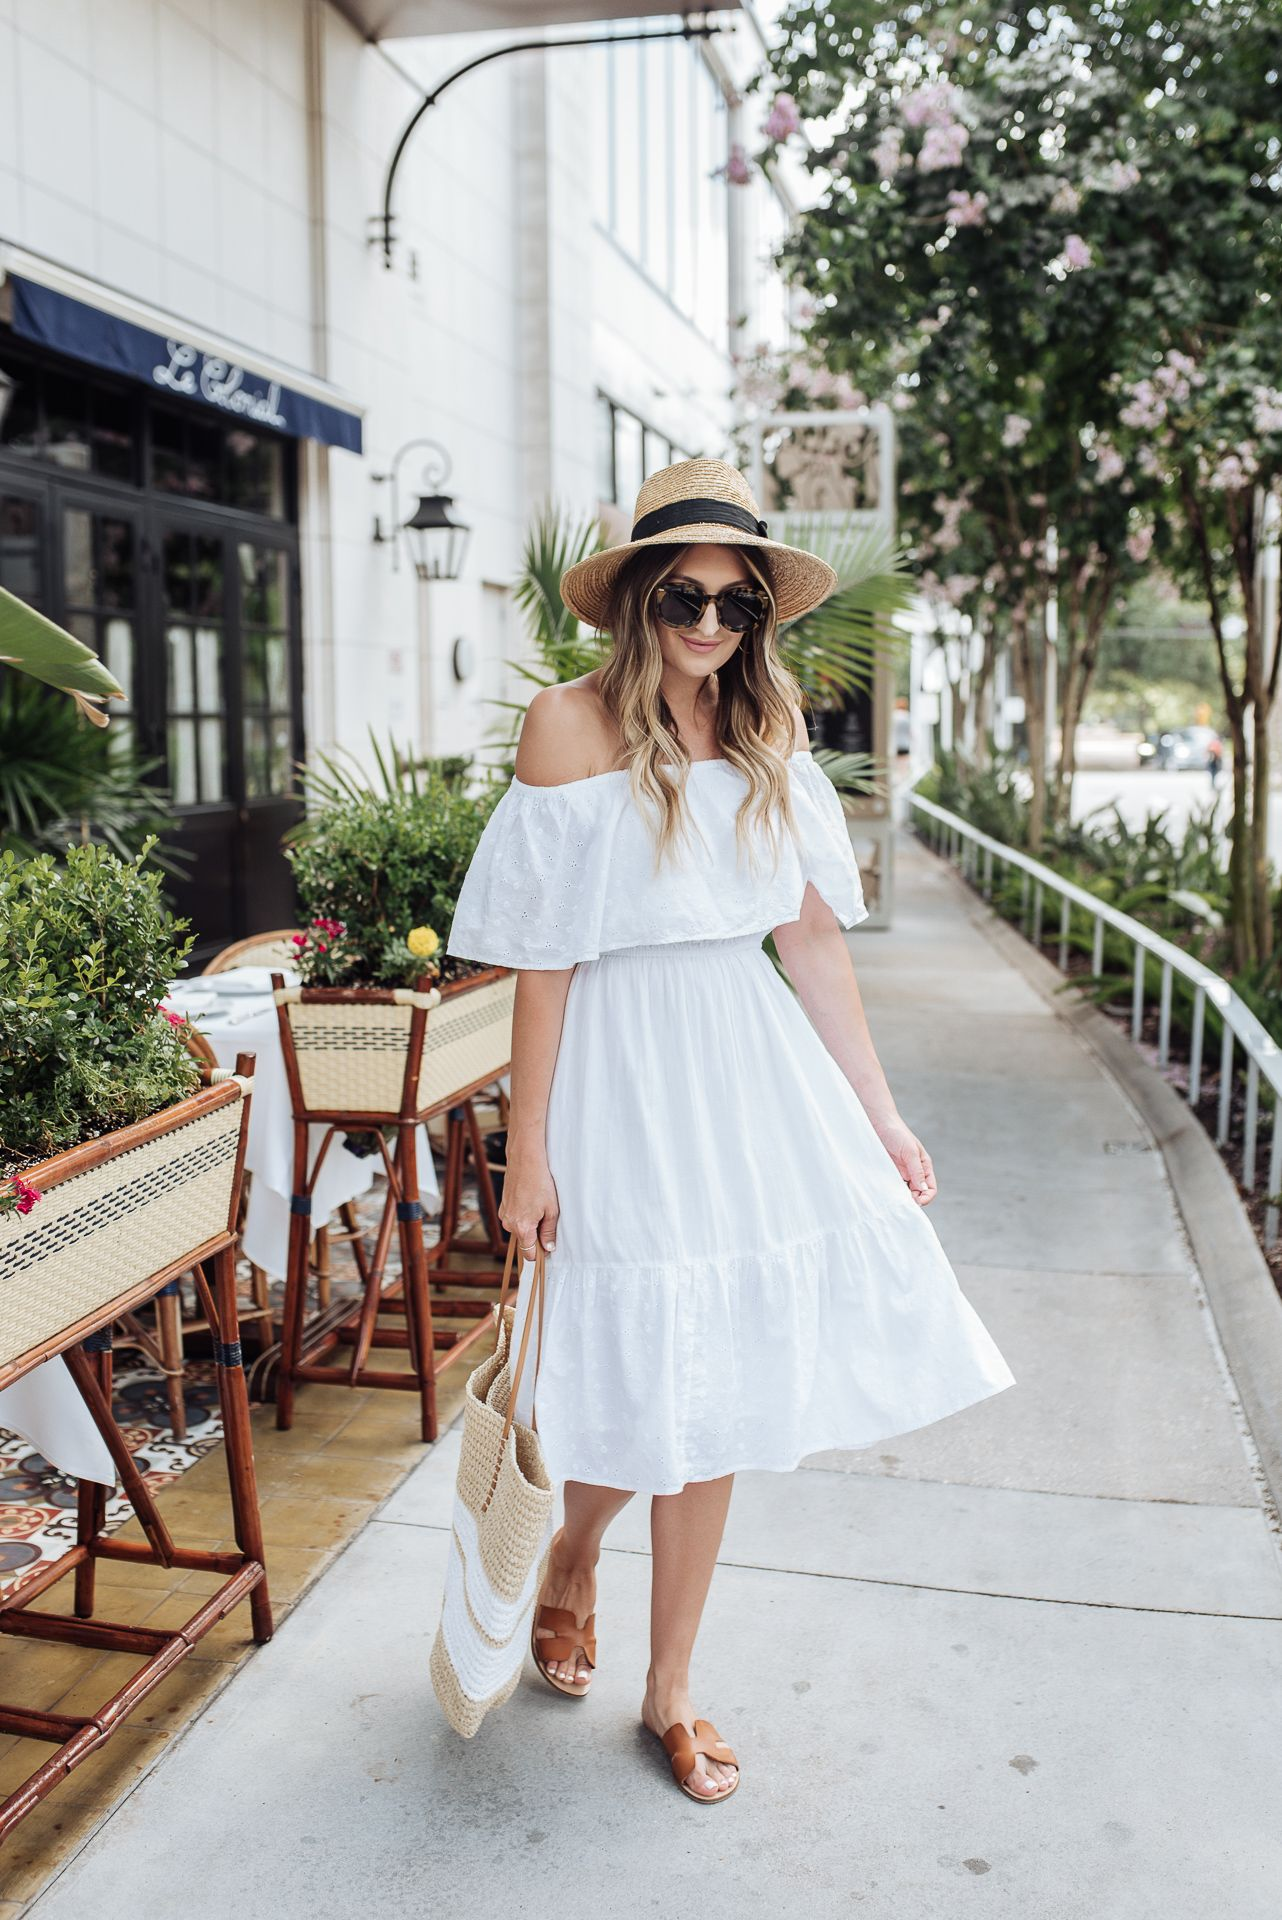 White Off The Shoulder Dress From Walmart White Off Shoulder Dresses Shoulder Dress [ 1920 x 1282 Pixel ]